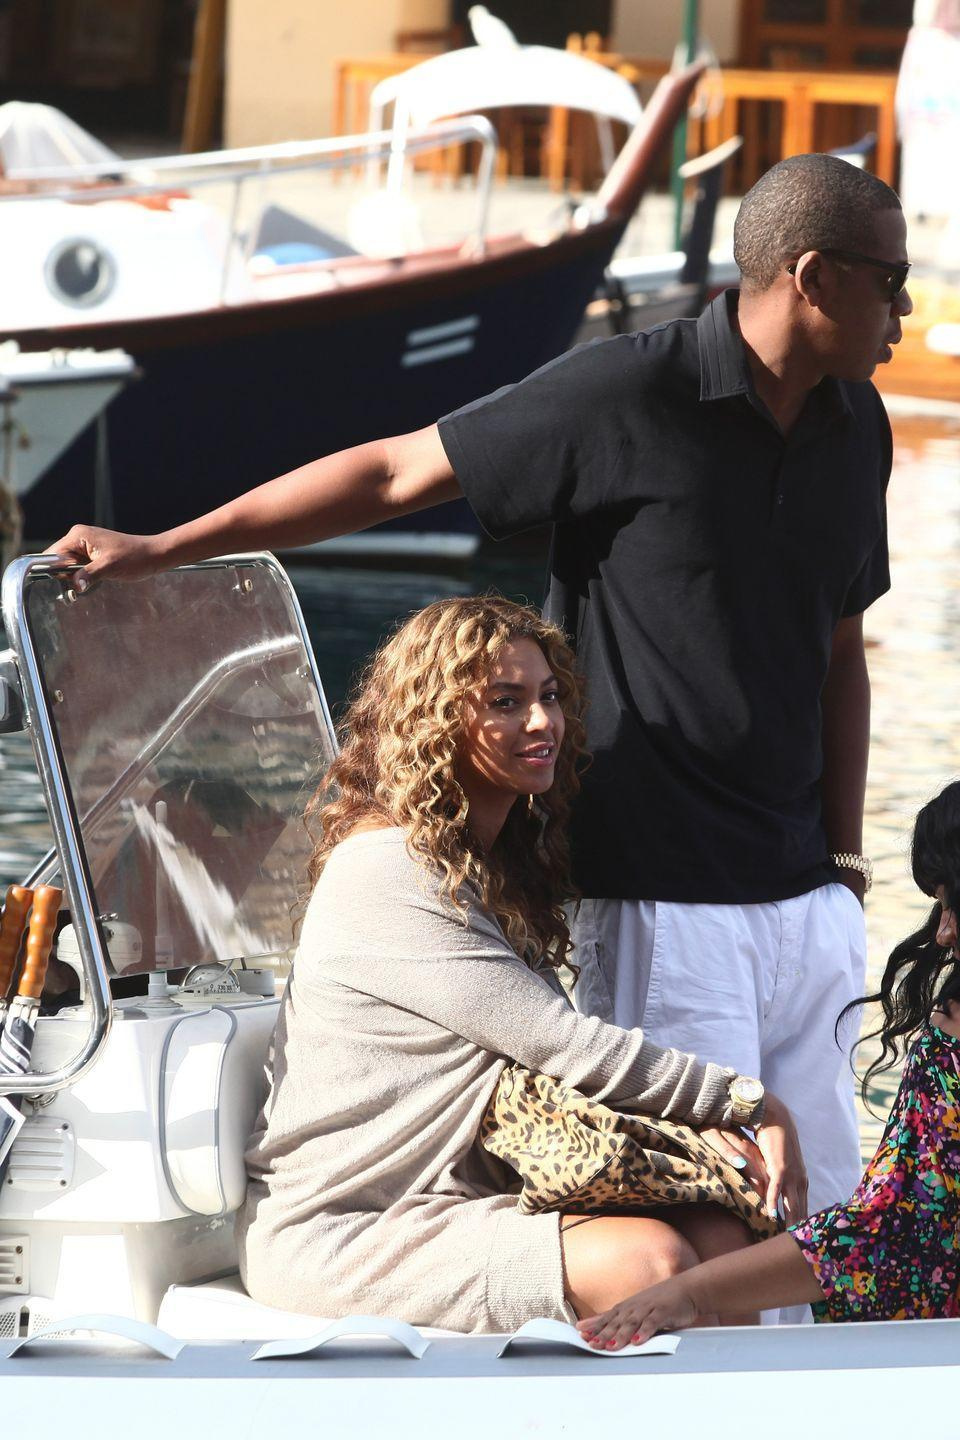 <p>Beyonce and Jay-Z on a boat during a vacation in Portofino, Italy.</p><p>Other celebrity visitors this year: Ryan Seacrest, Julianne Hough, Jessica Simpson, Heather Graham, Channing Tatum, Jenna Dewan.</p>